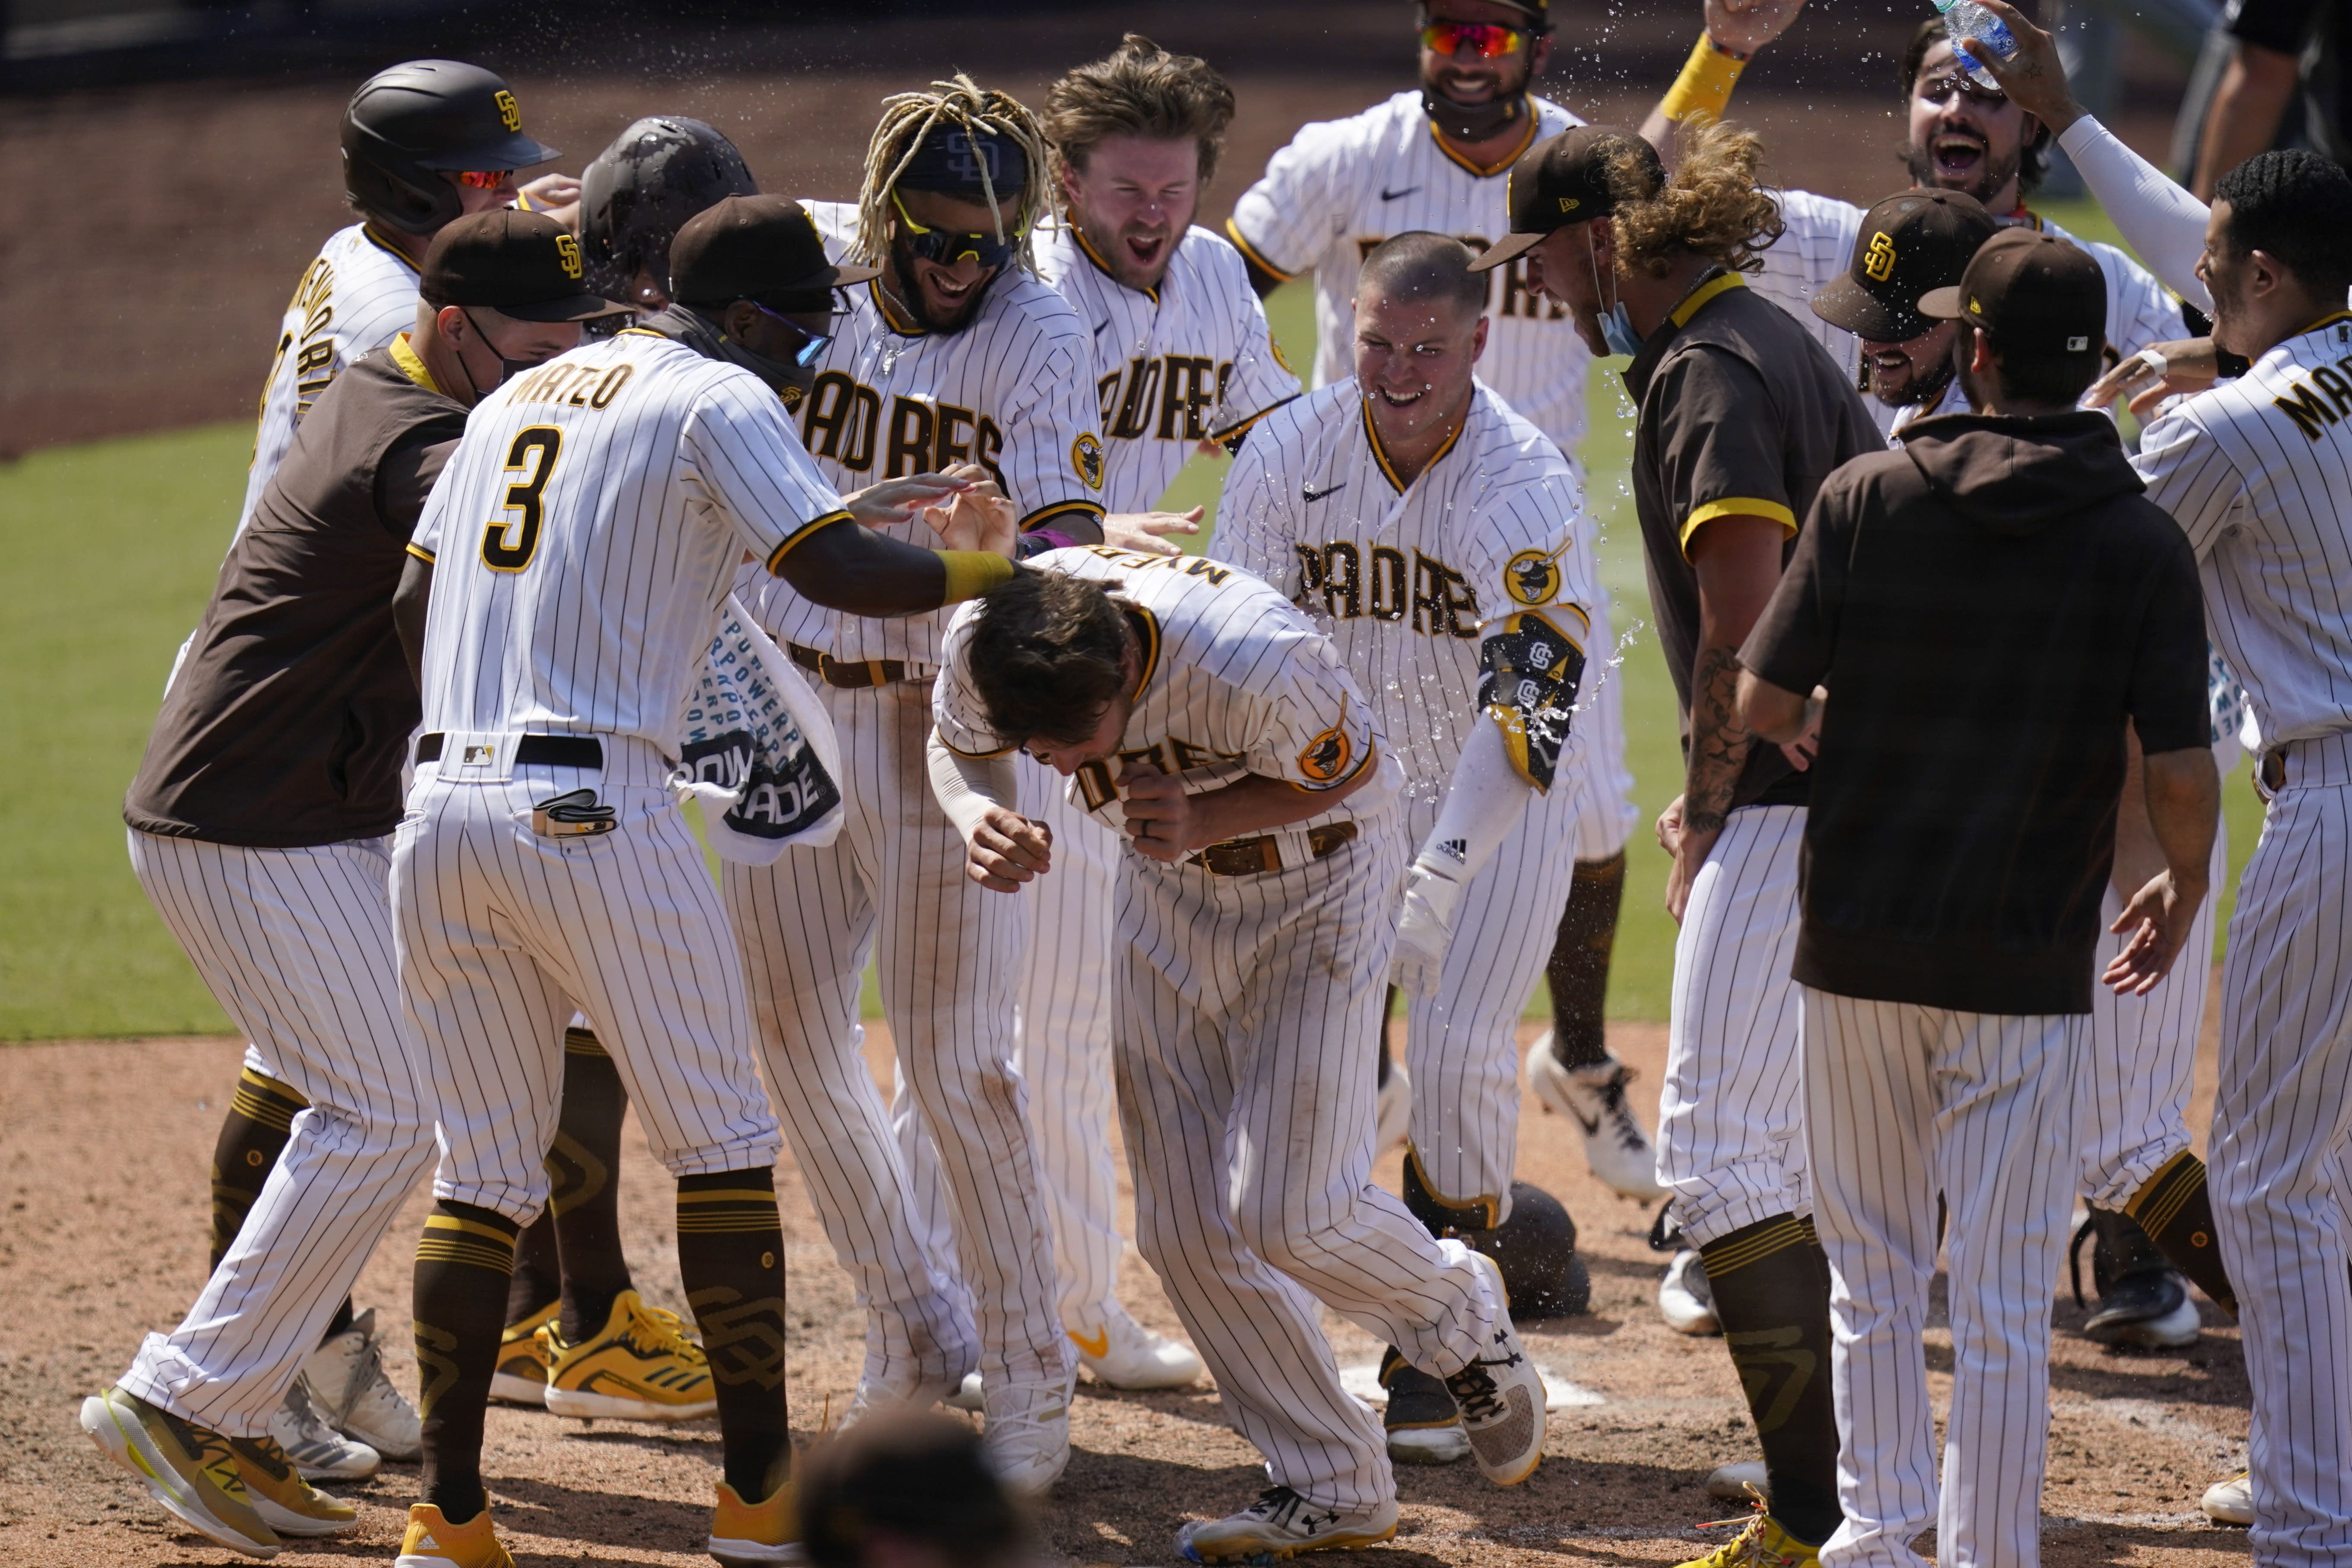 San Diego Padres' Wil Myers, center, reacts with teammates after hitting a three-run walkoff home run to defeat the Seattle Mariners in a baseball game Thursday, Aug. 27, 2020, in San Diego. (AP Photo/Gregory Bull)